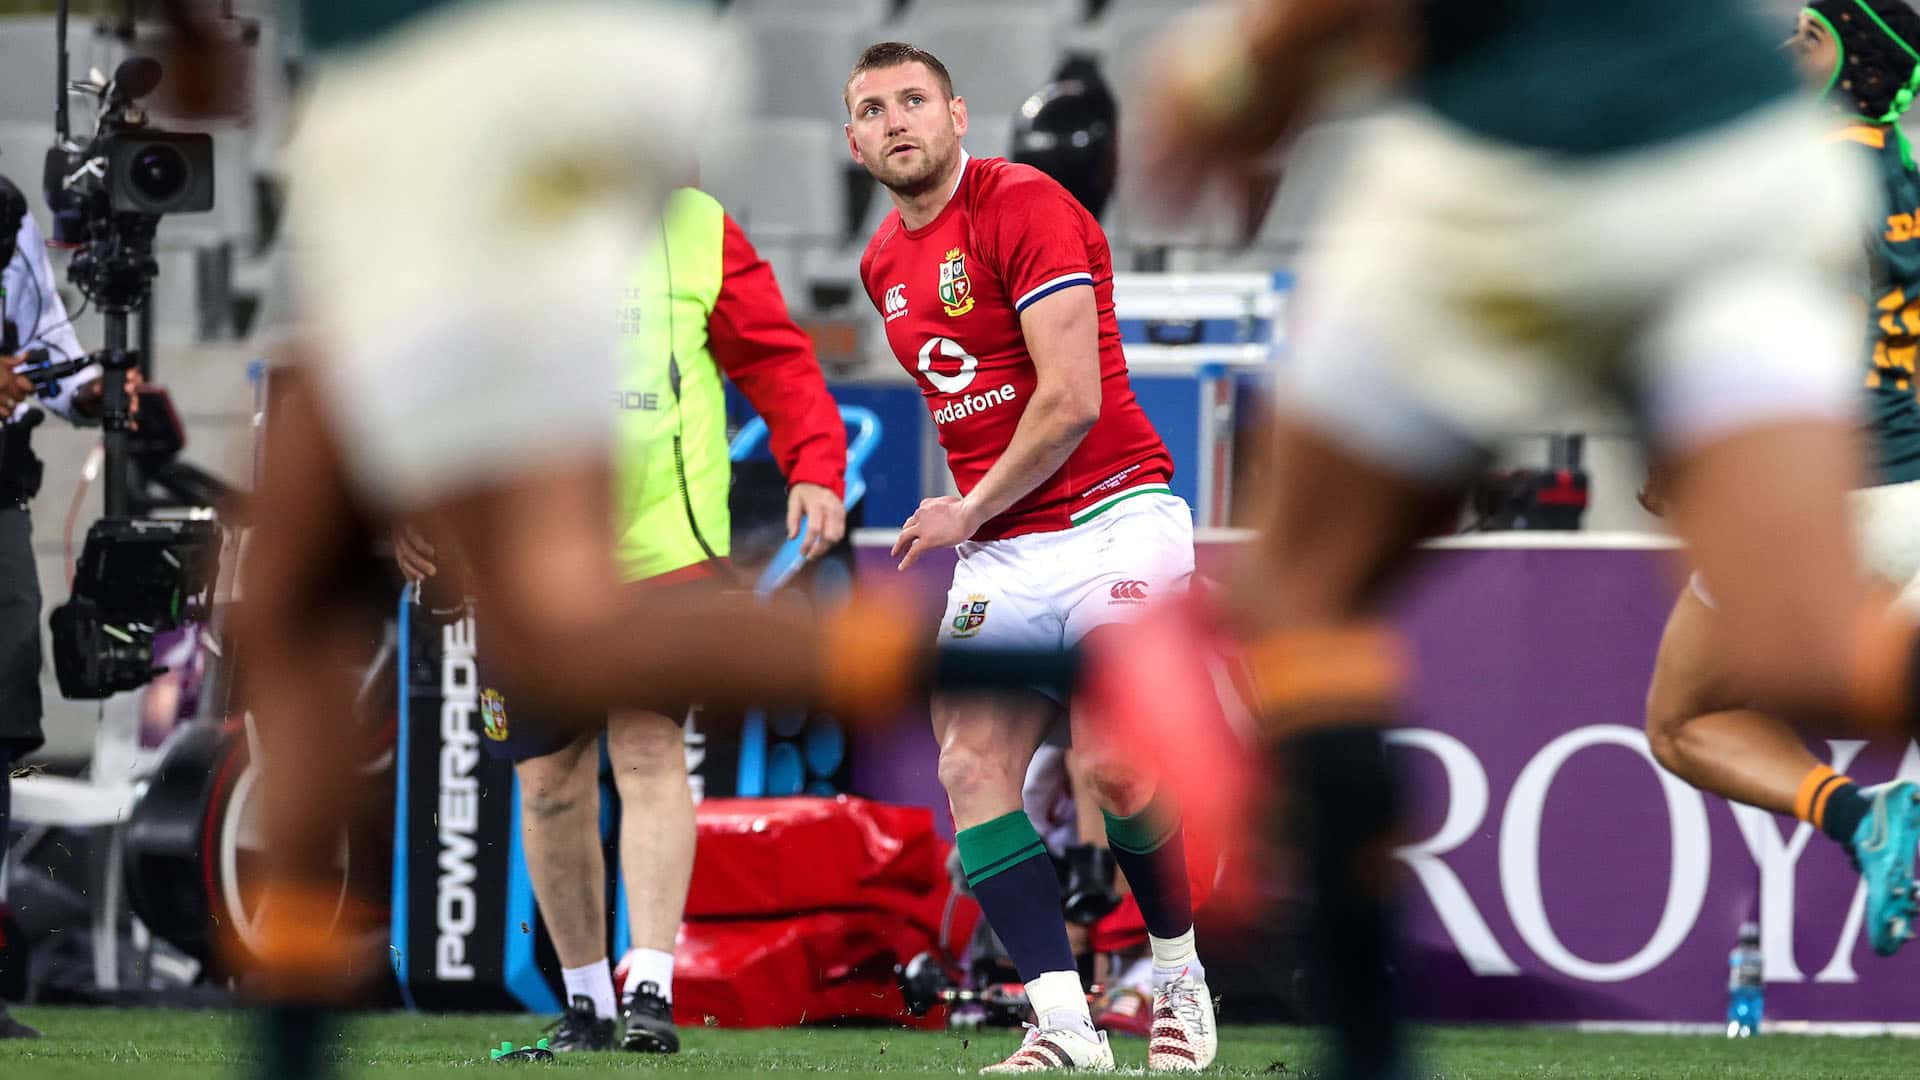 The British & Irish Lions experienced a severe case of deja vu as Morne Steyn came off the bench to kick the Springboks to back-to-back series victories over the tourists. 12 years after Steyn landed the winning penalty for South Africa in the second Test of the 2009 series, the 37-year-old returned to haunt Warren Gatland's men in Cape Town. A Ken Owens try and five points from the boot of replacement Finn Russell had put the Lions 10-6 ahead half-time, with Handre Pollard kicking two penalties for the hosts. But a Cheslin Kolbe try after the interval turned the tide back in the Springboks' favour before Russell and Steyn traded penalties to leave the scores level with six minutes to go. And with the class of 2021 looking to emulate the Lions of 1974 and 1997, it was ultimately Steyn who delivered the decisive blow to break the tourists' hearts once again. RUSSELL ARRIVAL CHANGES TEST The turning point in the second half of the second Test revolved around the aerial battle as the Springboks took advantage of a series of mistakes from the tourists under the high ball. Unsurprisingly, South Africa continued where they left off at Cape Town Stadium, launching the ball high repeatedly in the early stages and enjoying plenty of success once again. But after a couple of high balls went the way off the Green and Gold, the third handed the Lions a chance to take the lead after Jasper Wiese was adjudged to have been offside. Biggar's effort was wide of the mark, however, in what proved to be almost his final act as the Welsh fly-half was soon forced off with an injury after making a tackle on Lukhanyo Am. His exit prompted the early introduction of Finn Russell for his Test debut for the tourists, having last run out in the famous red jersey in the first match against Cell C Sharks in July. While he had to watch on as Handre Pollard kicked the opening points on 11 minutes, it was not long before Russell responded from the tee after the Lions were awarded a scrum penalty. It